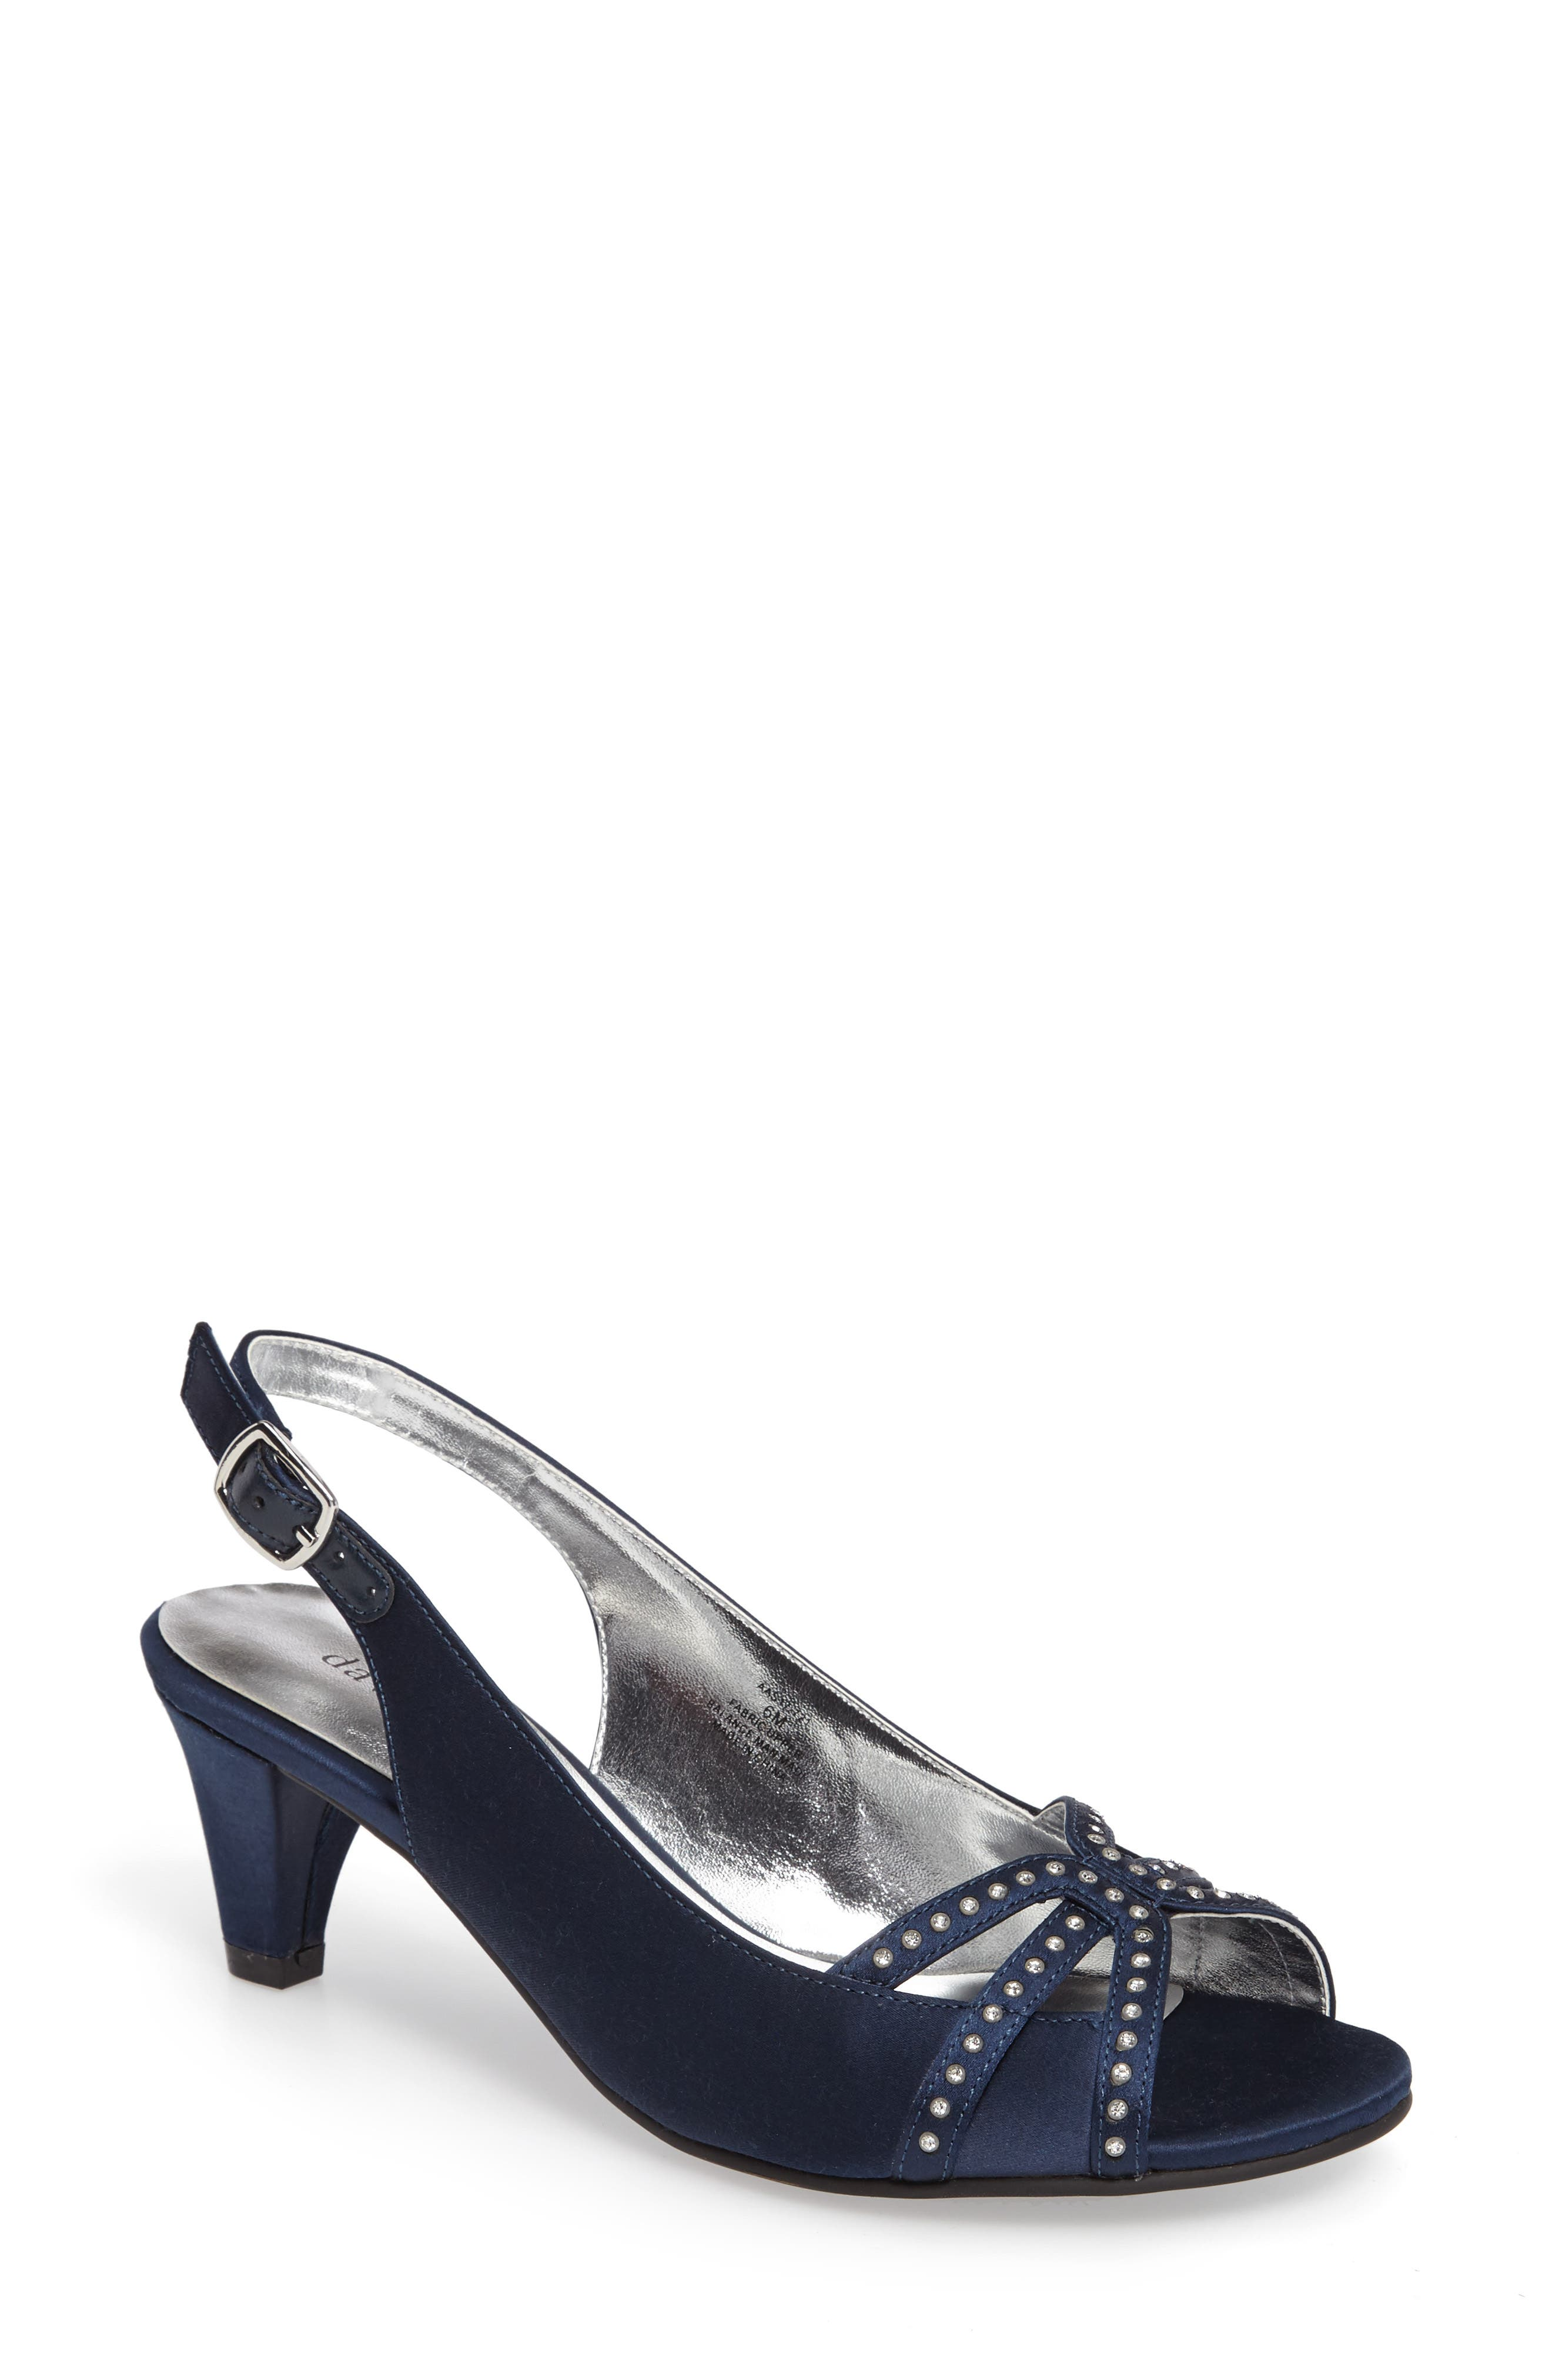 Regal Embellished Slingback Sandal,                             Main thumbnail 1, color,                             NAVY FABRIC